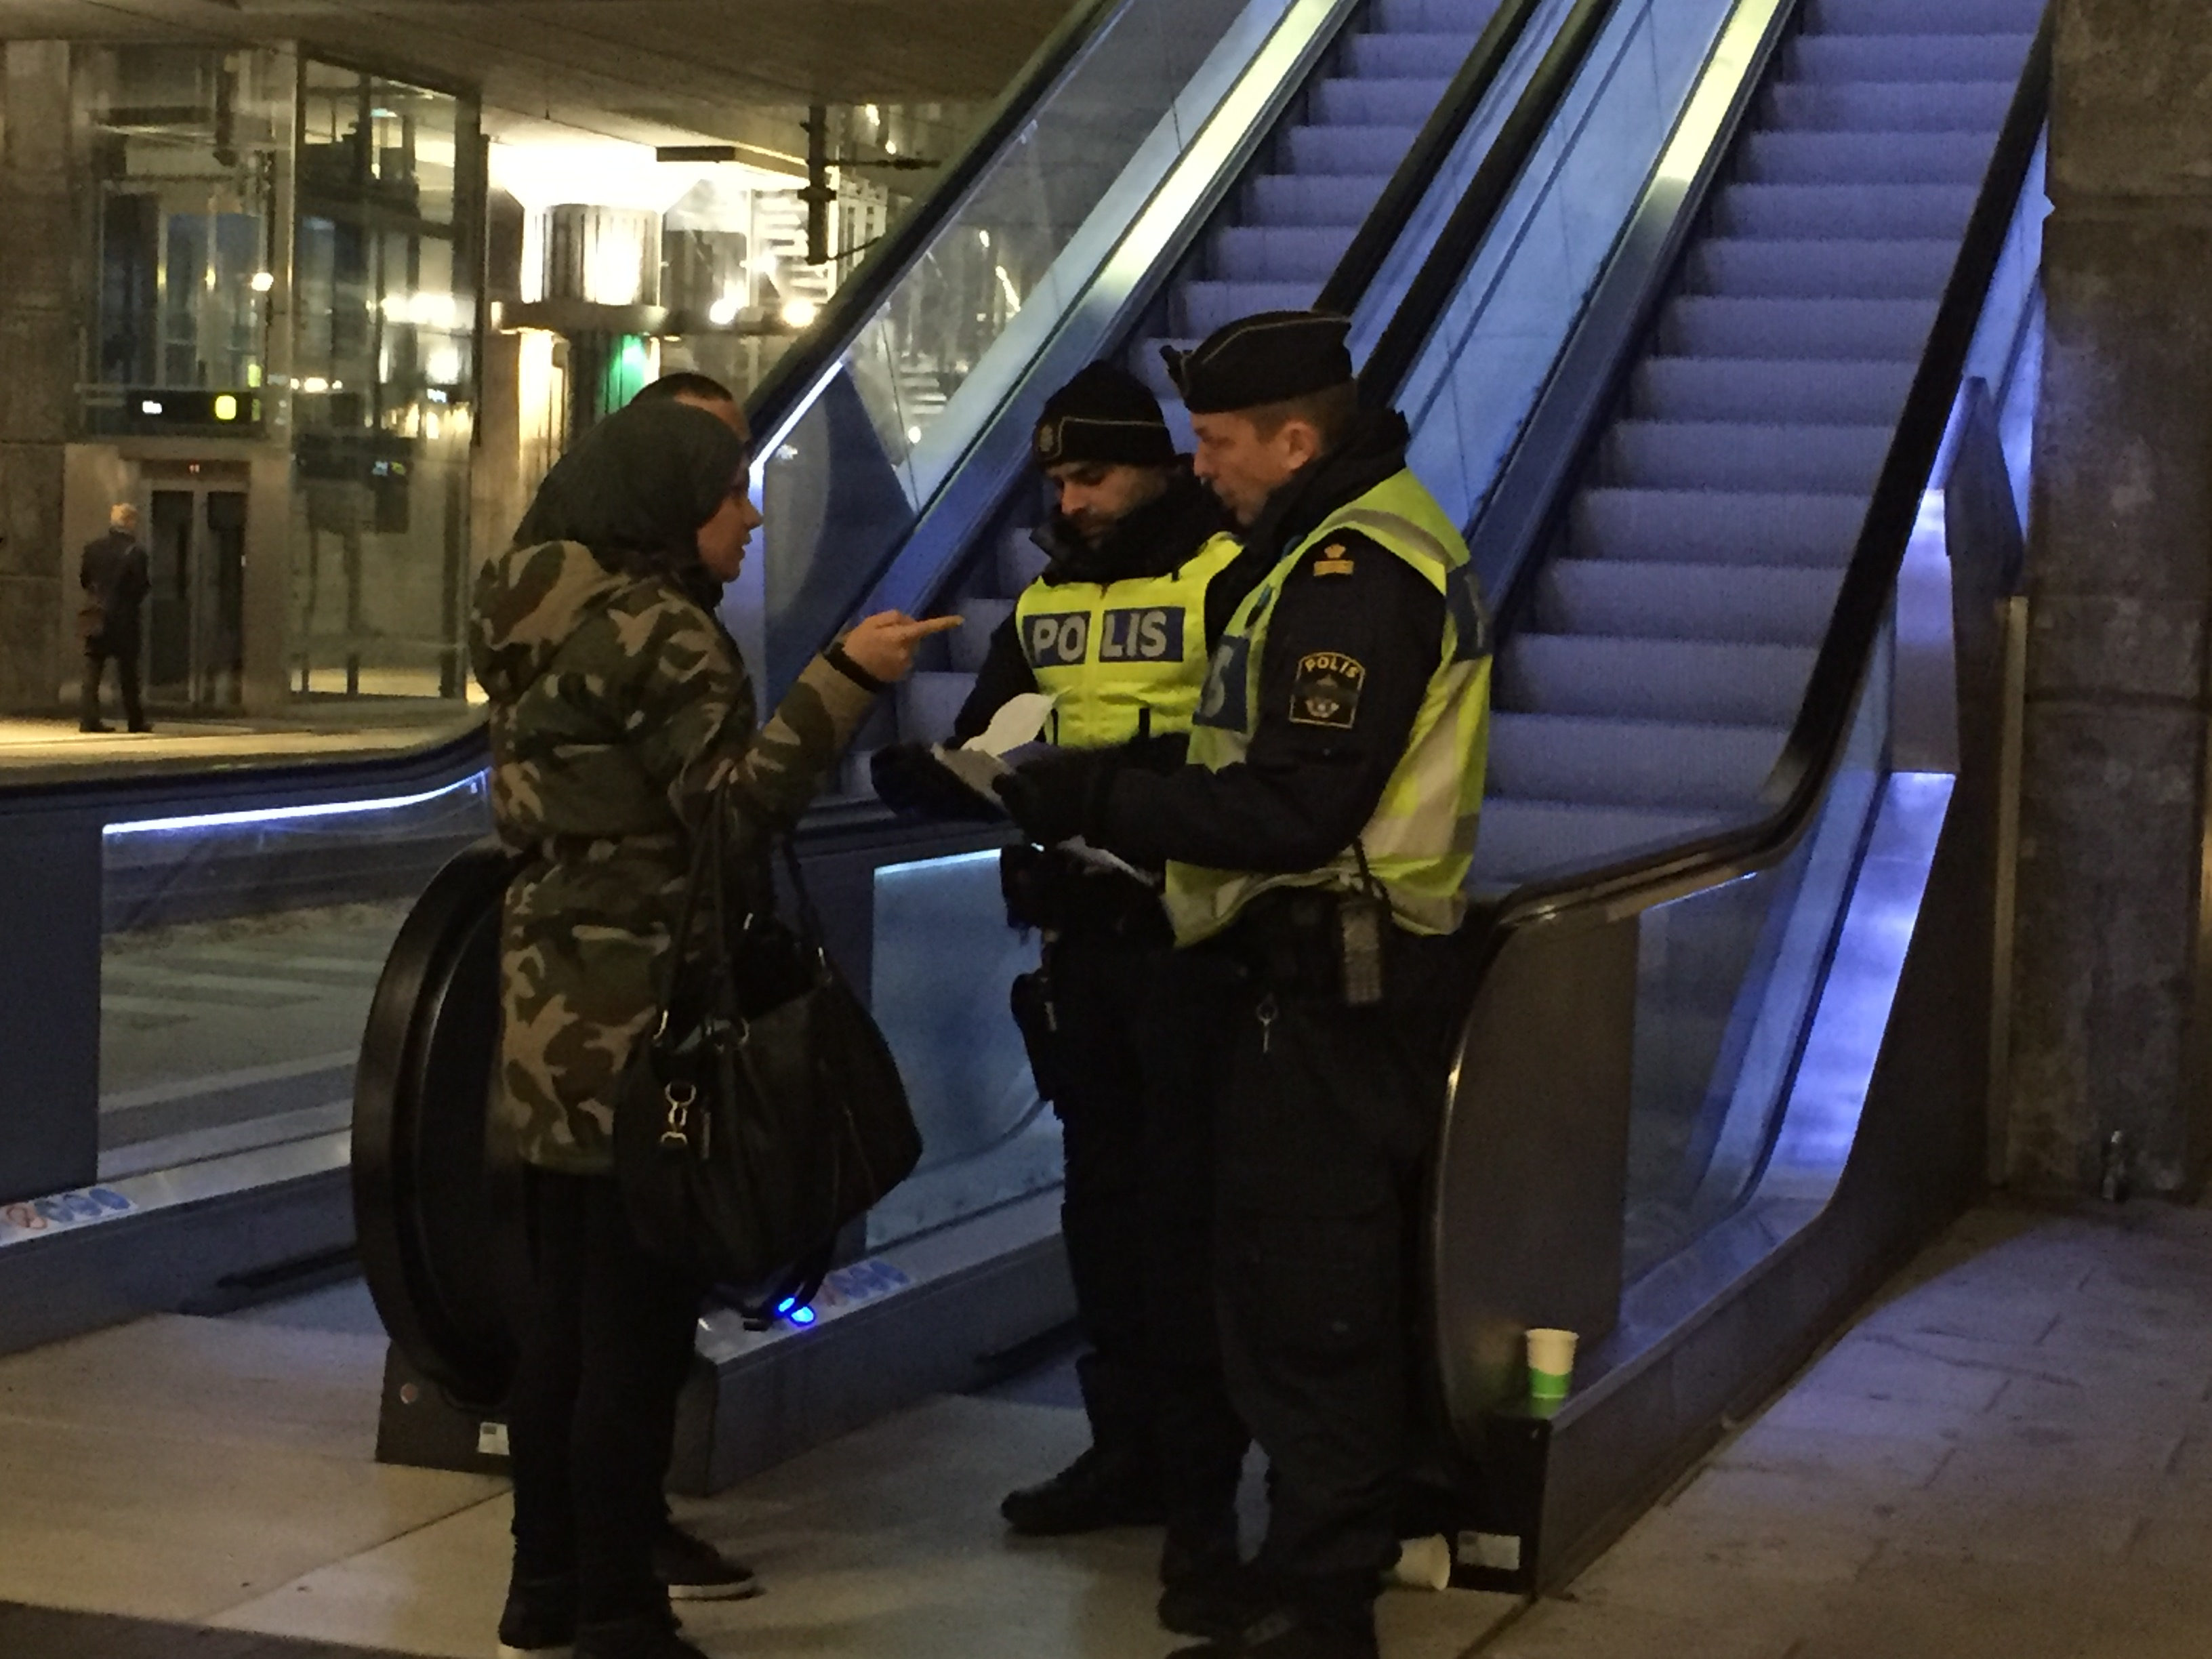 Police check documents of people arriving at Hyllie Station, Malmo, Sweden, 26 November, 2015